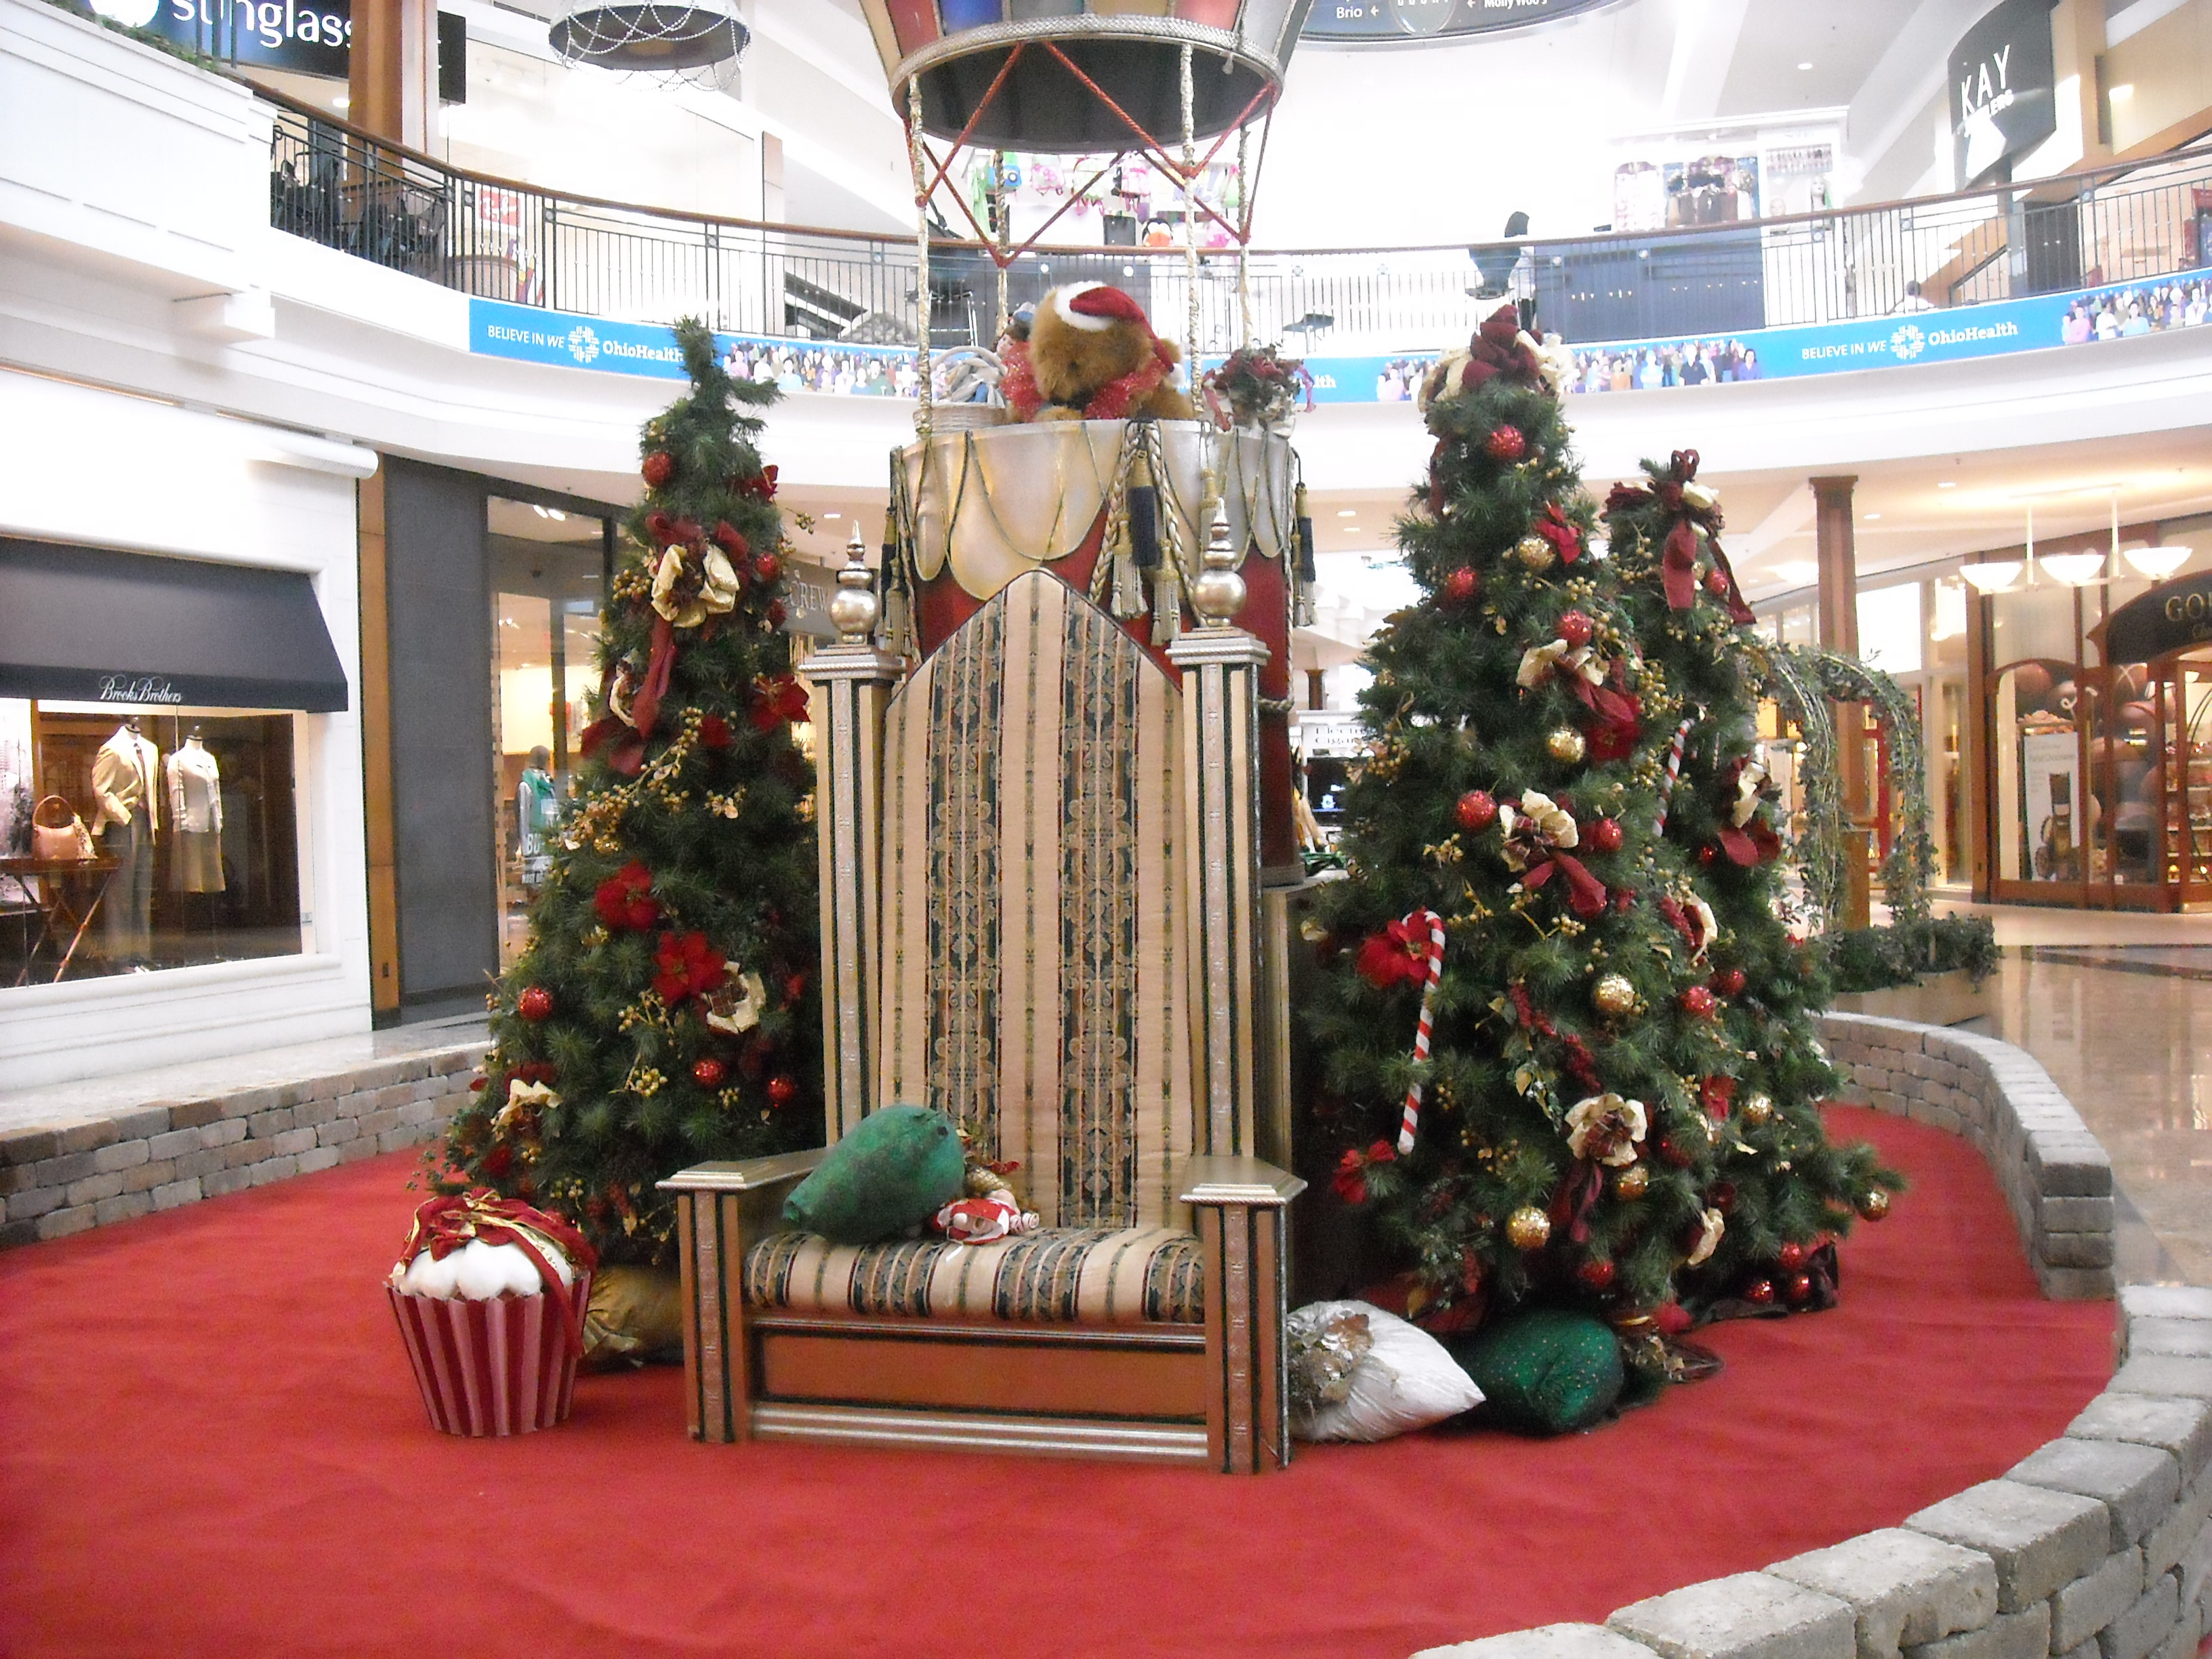 Christmas at Polaris Fashion Place